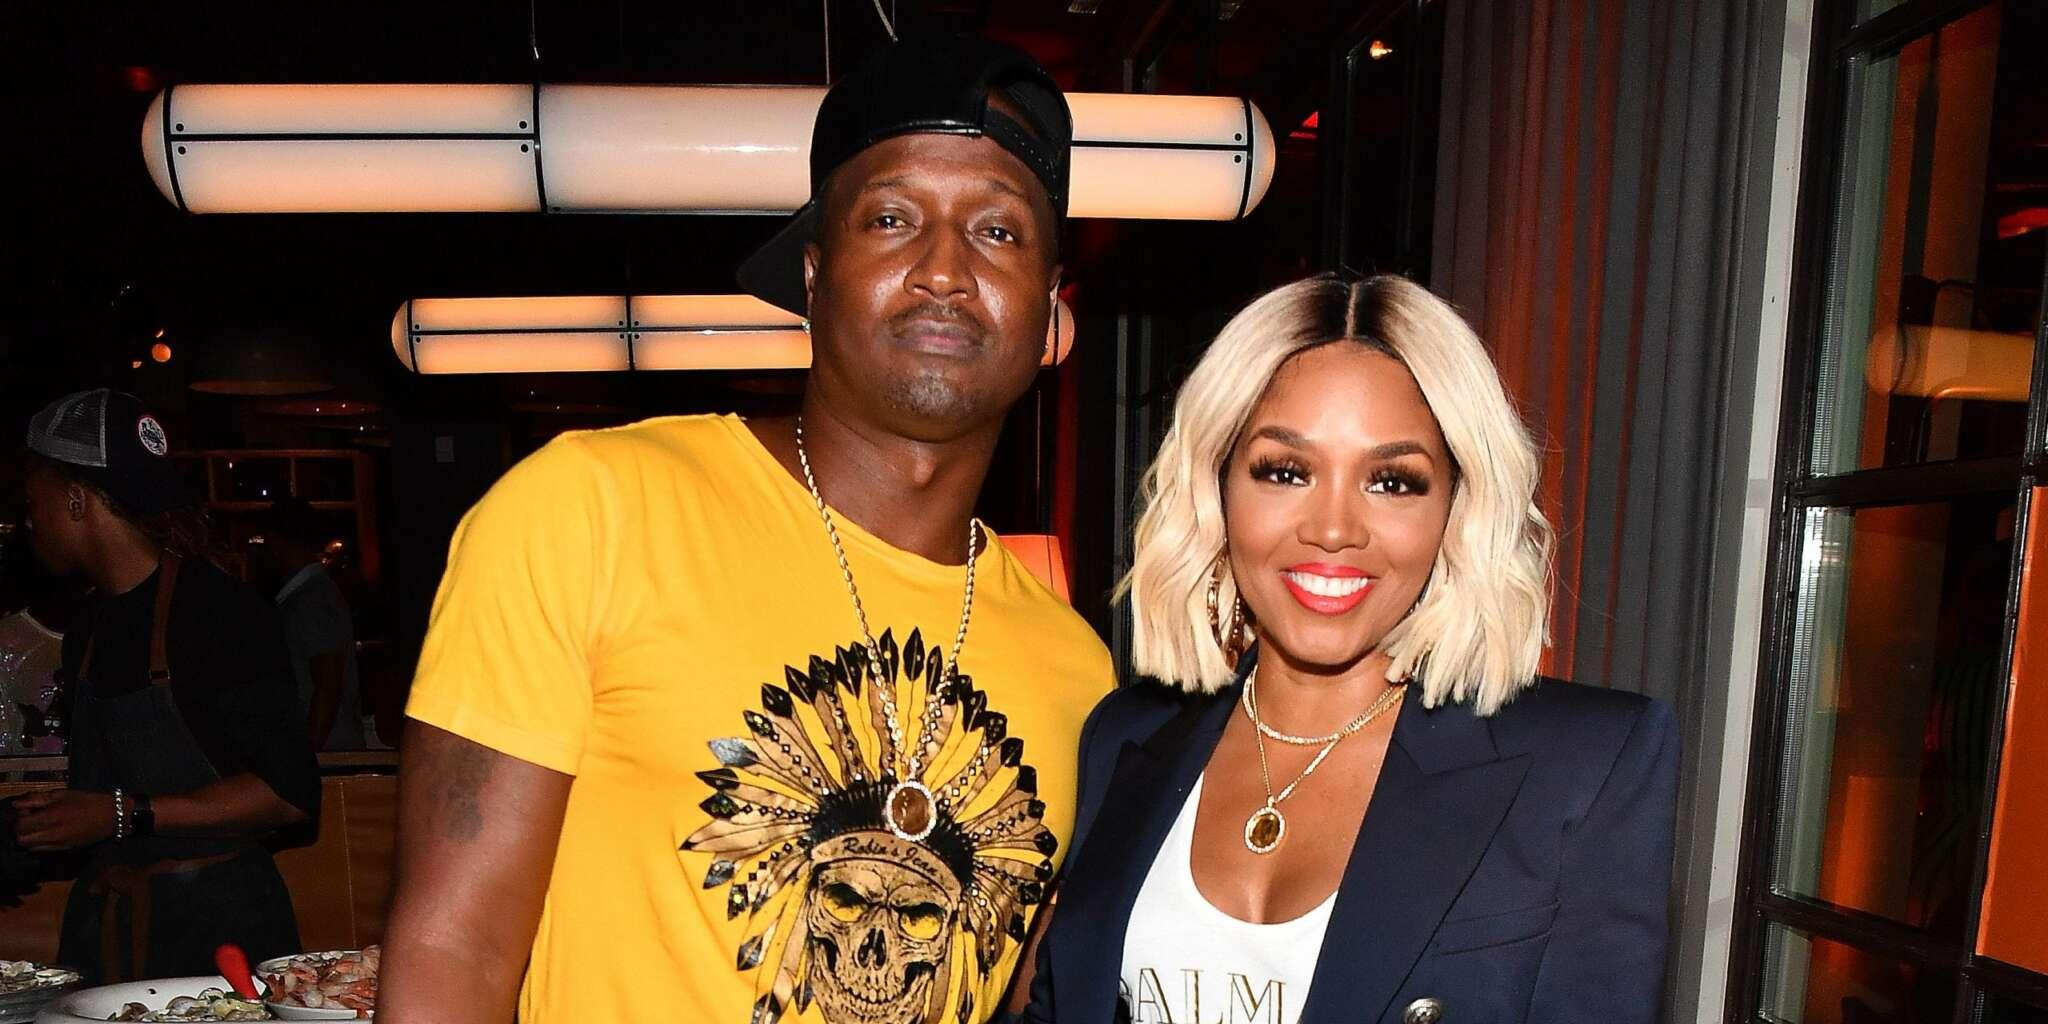 Kirk Frost Shows Off His Fresh Haircut To Fans - Check Out His Video That Has Rasheeda Sending Love In The Comments